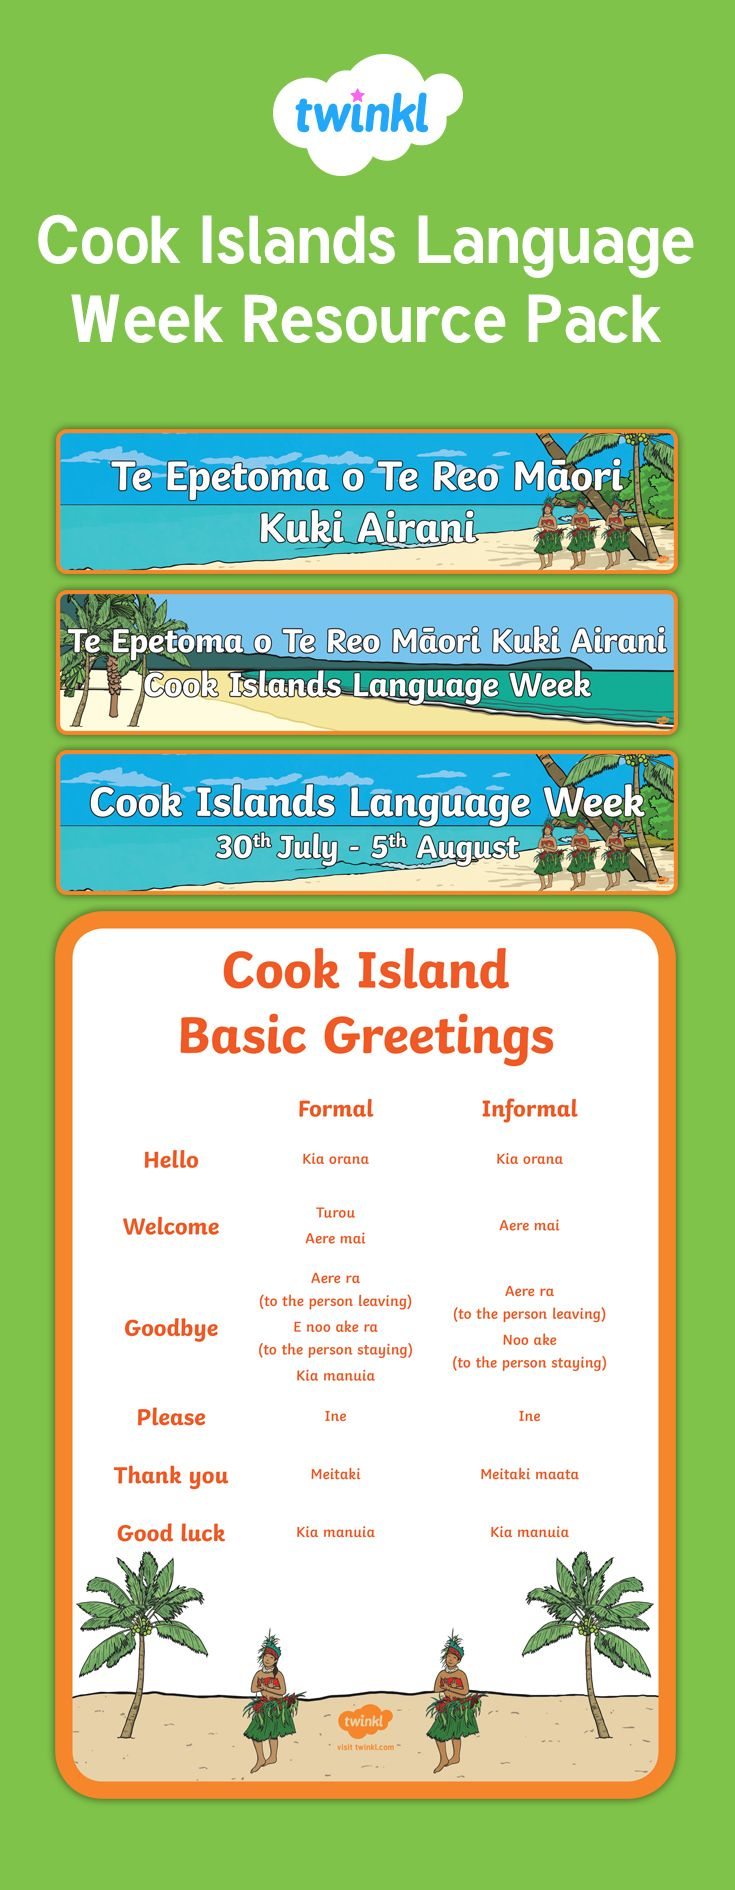 Cook islands mori value pack cook island language pinterest cook islands mori value pack cook island language pinterest cook islands m4hsunfo Gallery